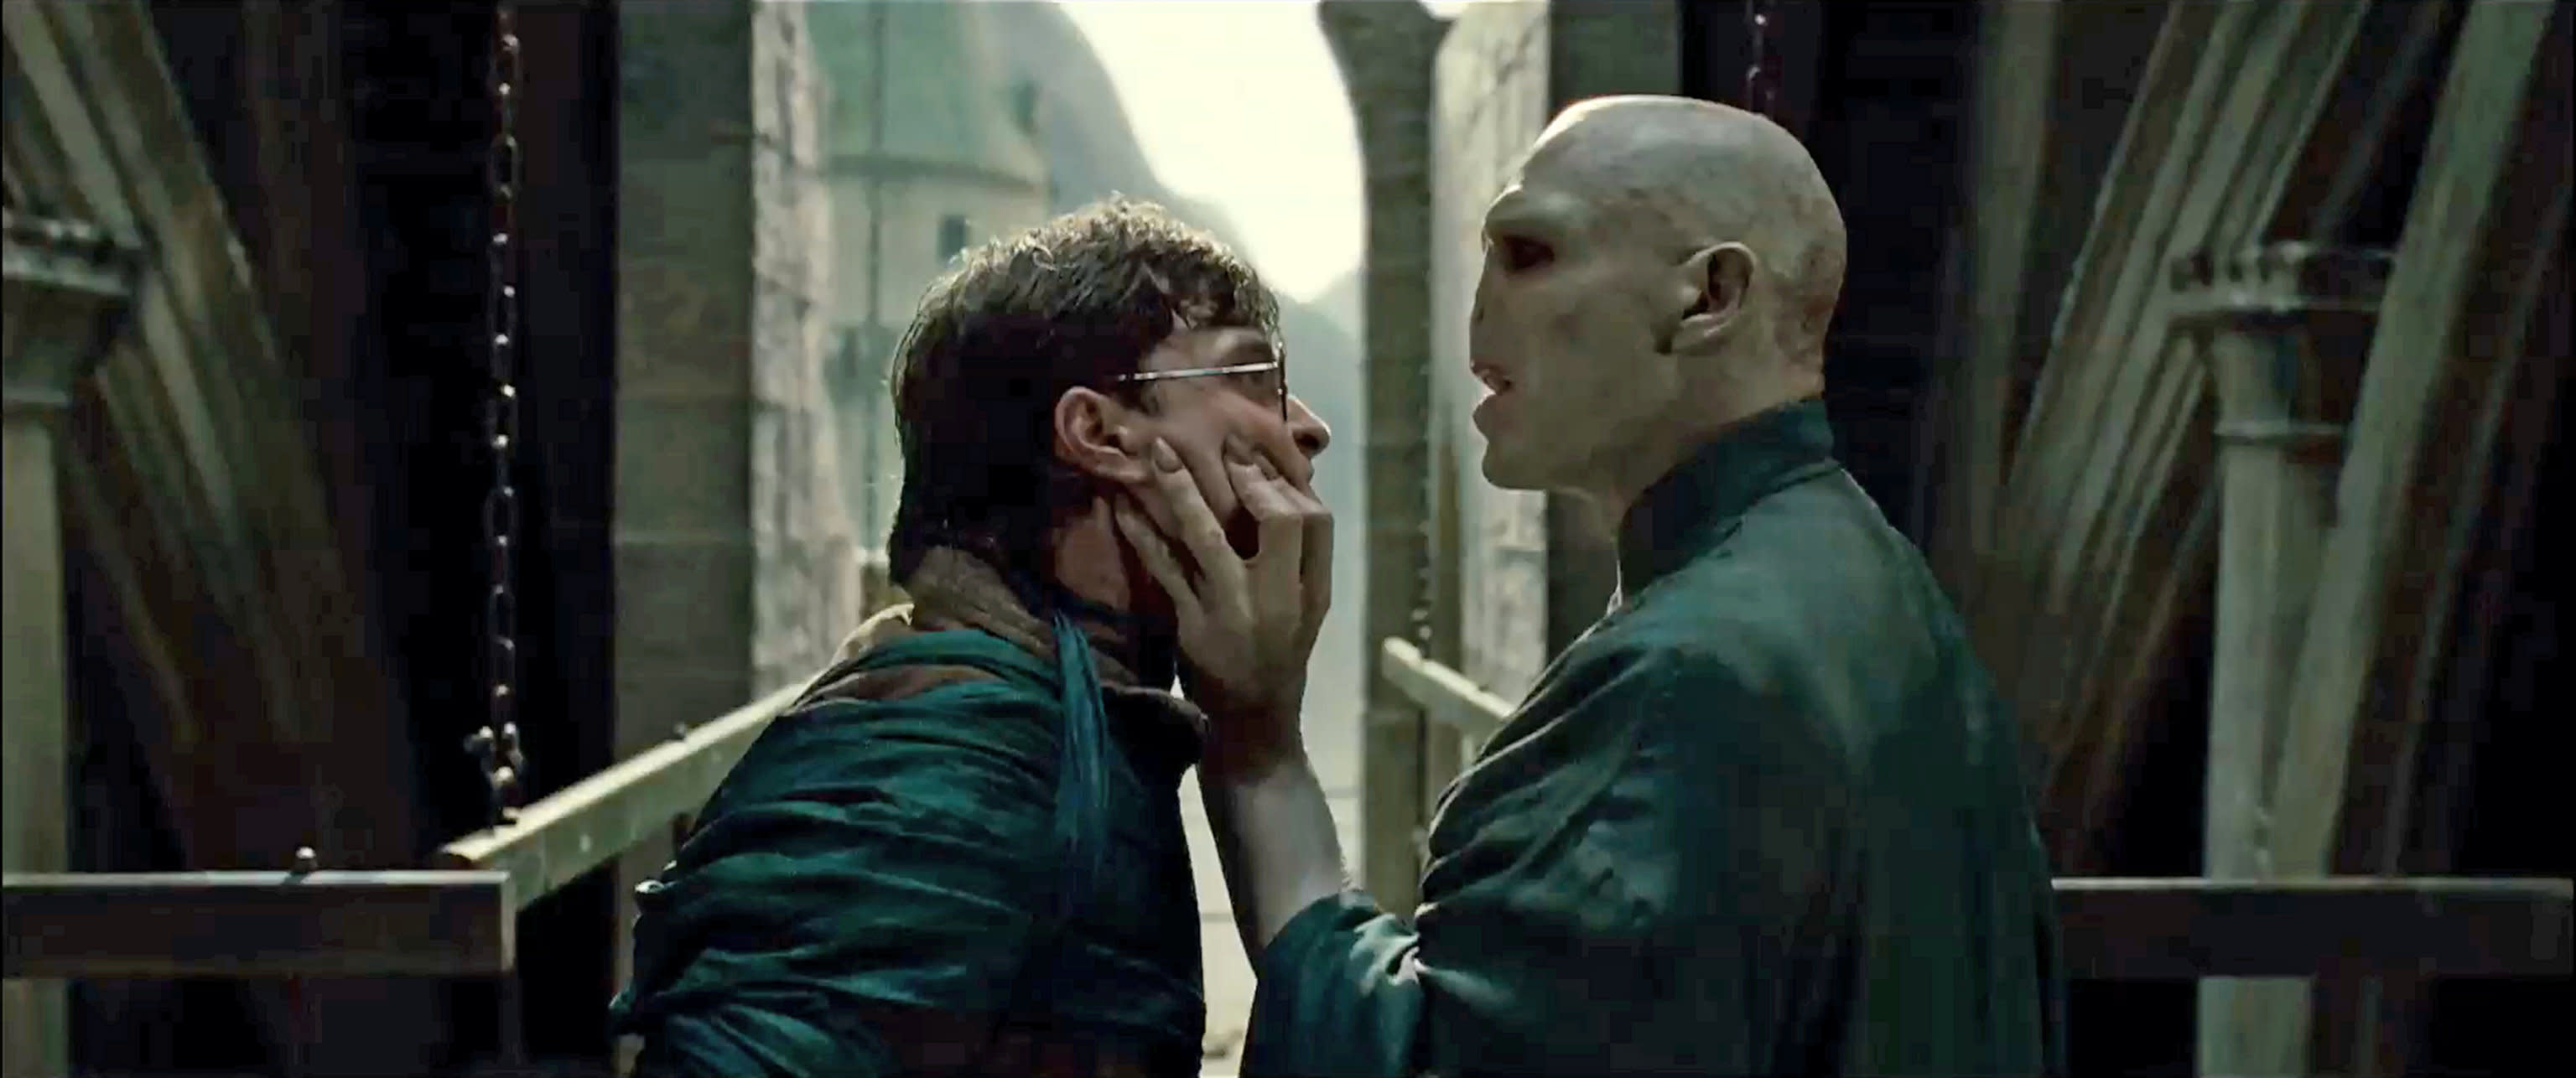 Voldemort WB F8 VoldemortSqueezingHarrysFace Still 080615 Land